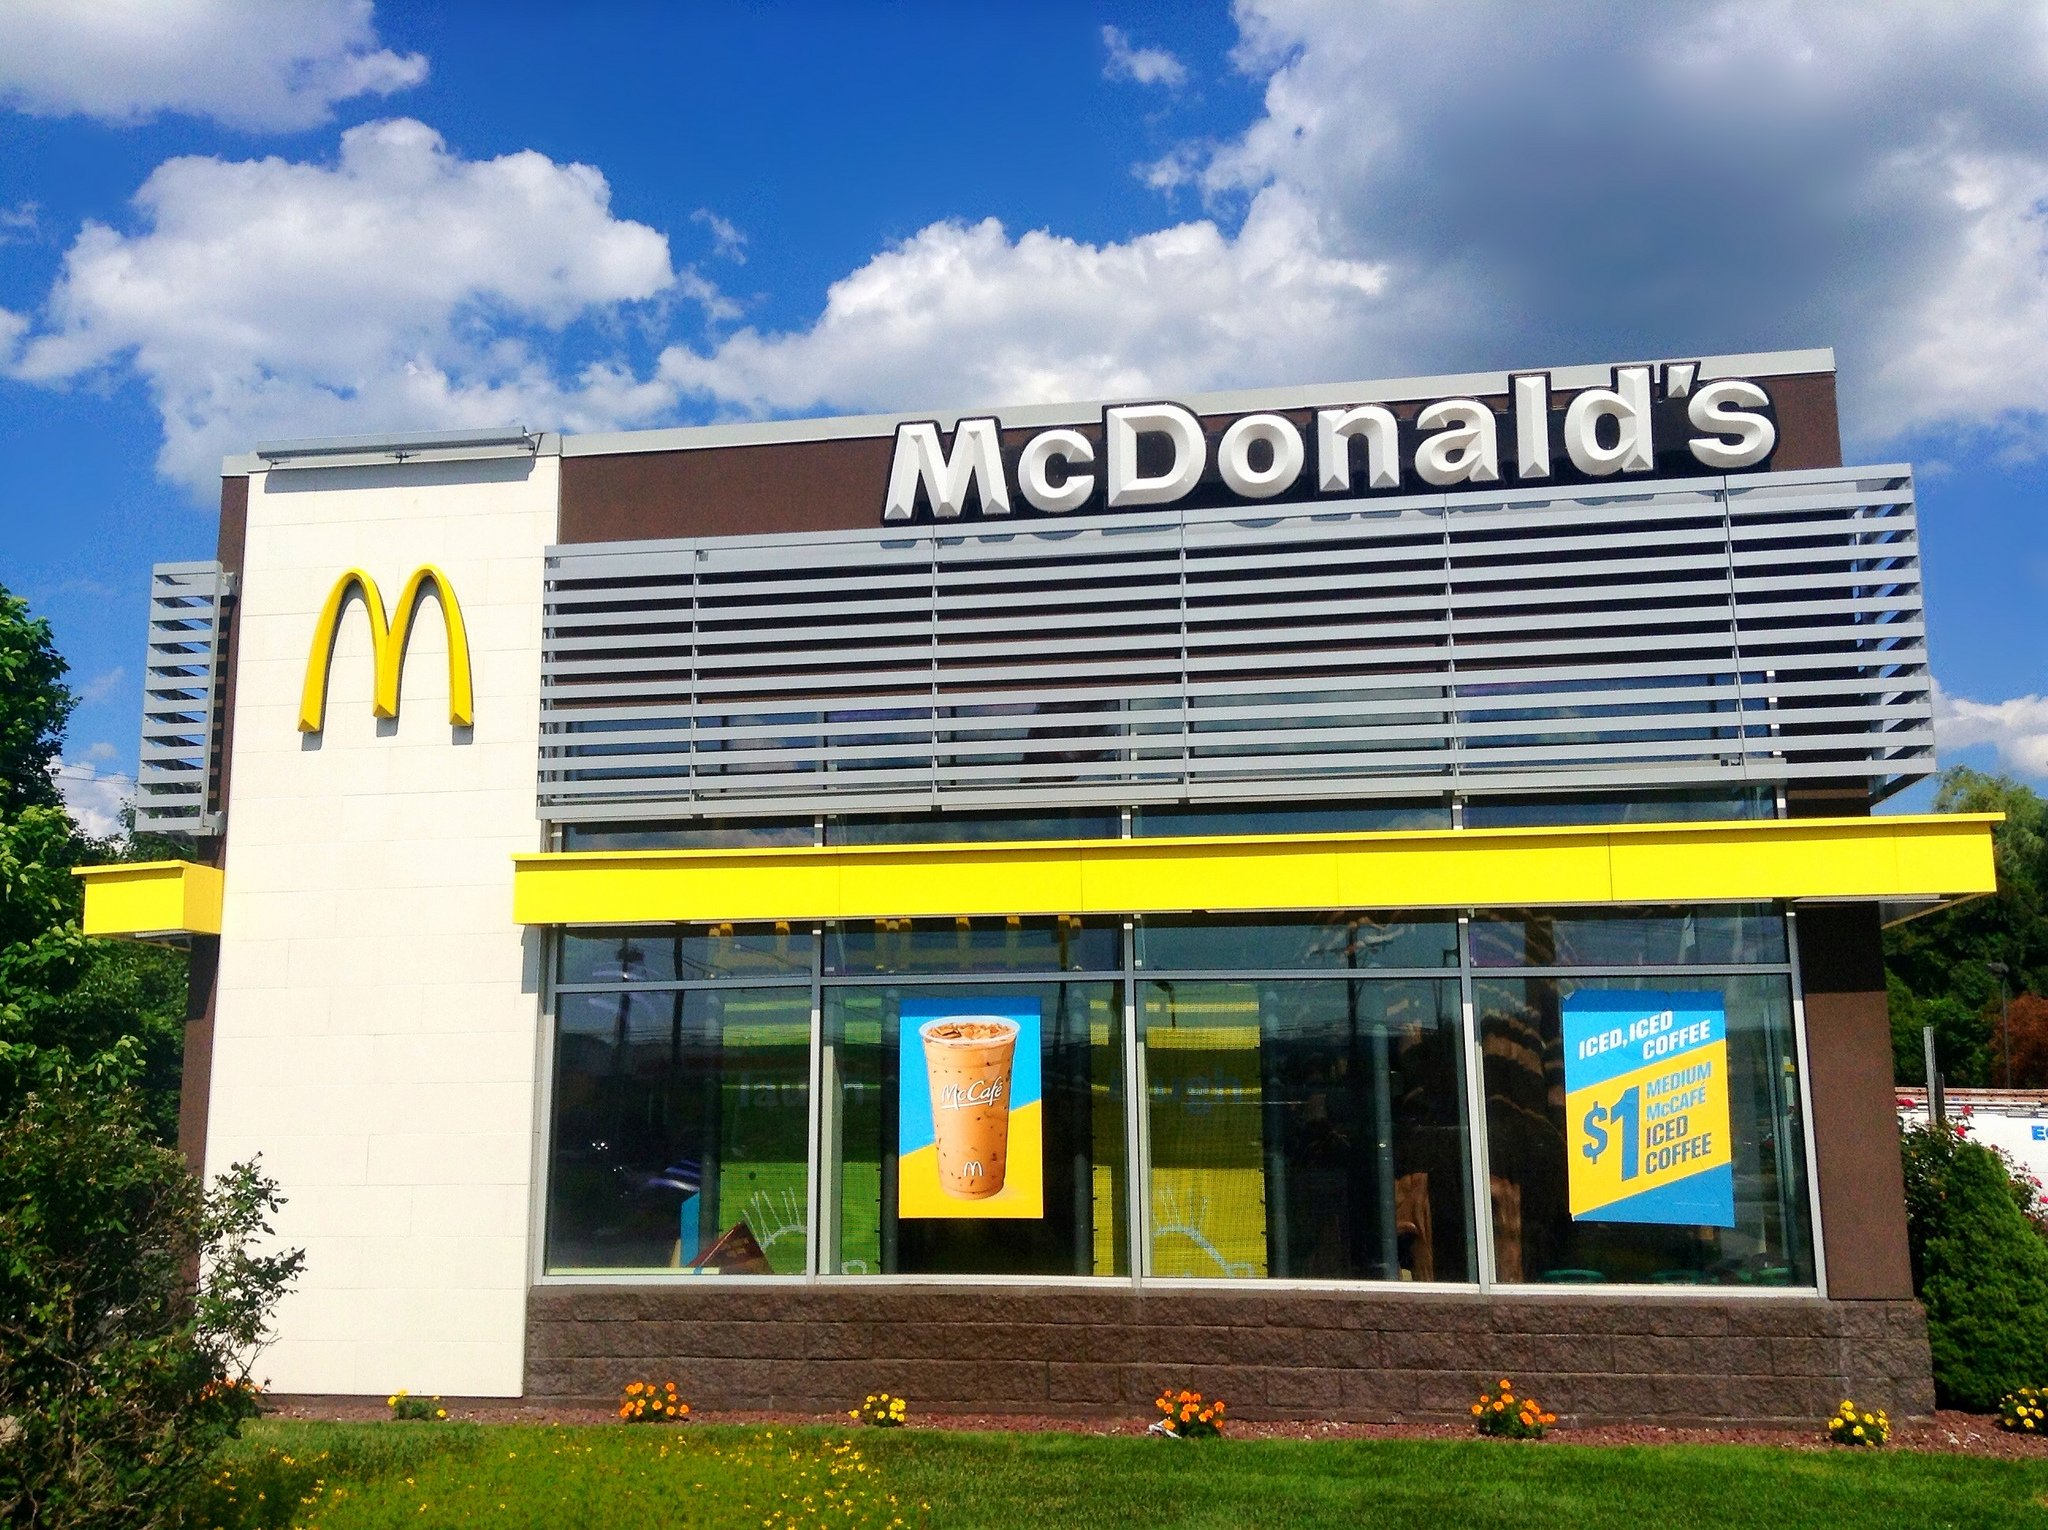 McDonald's 'McPick 2' Deal Will Now Cost You $5 Instead of $2